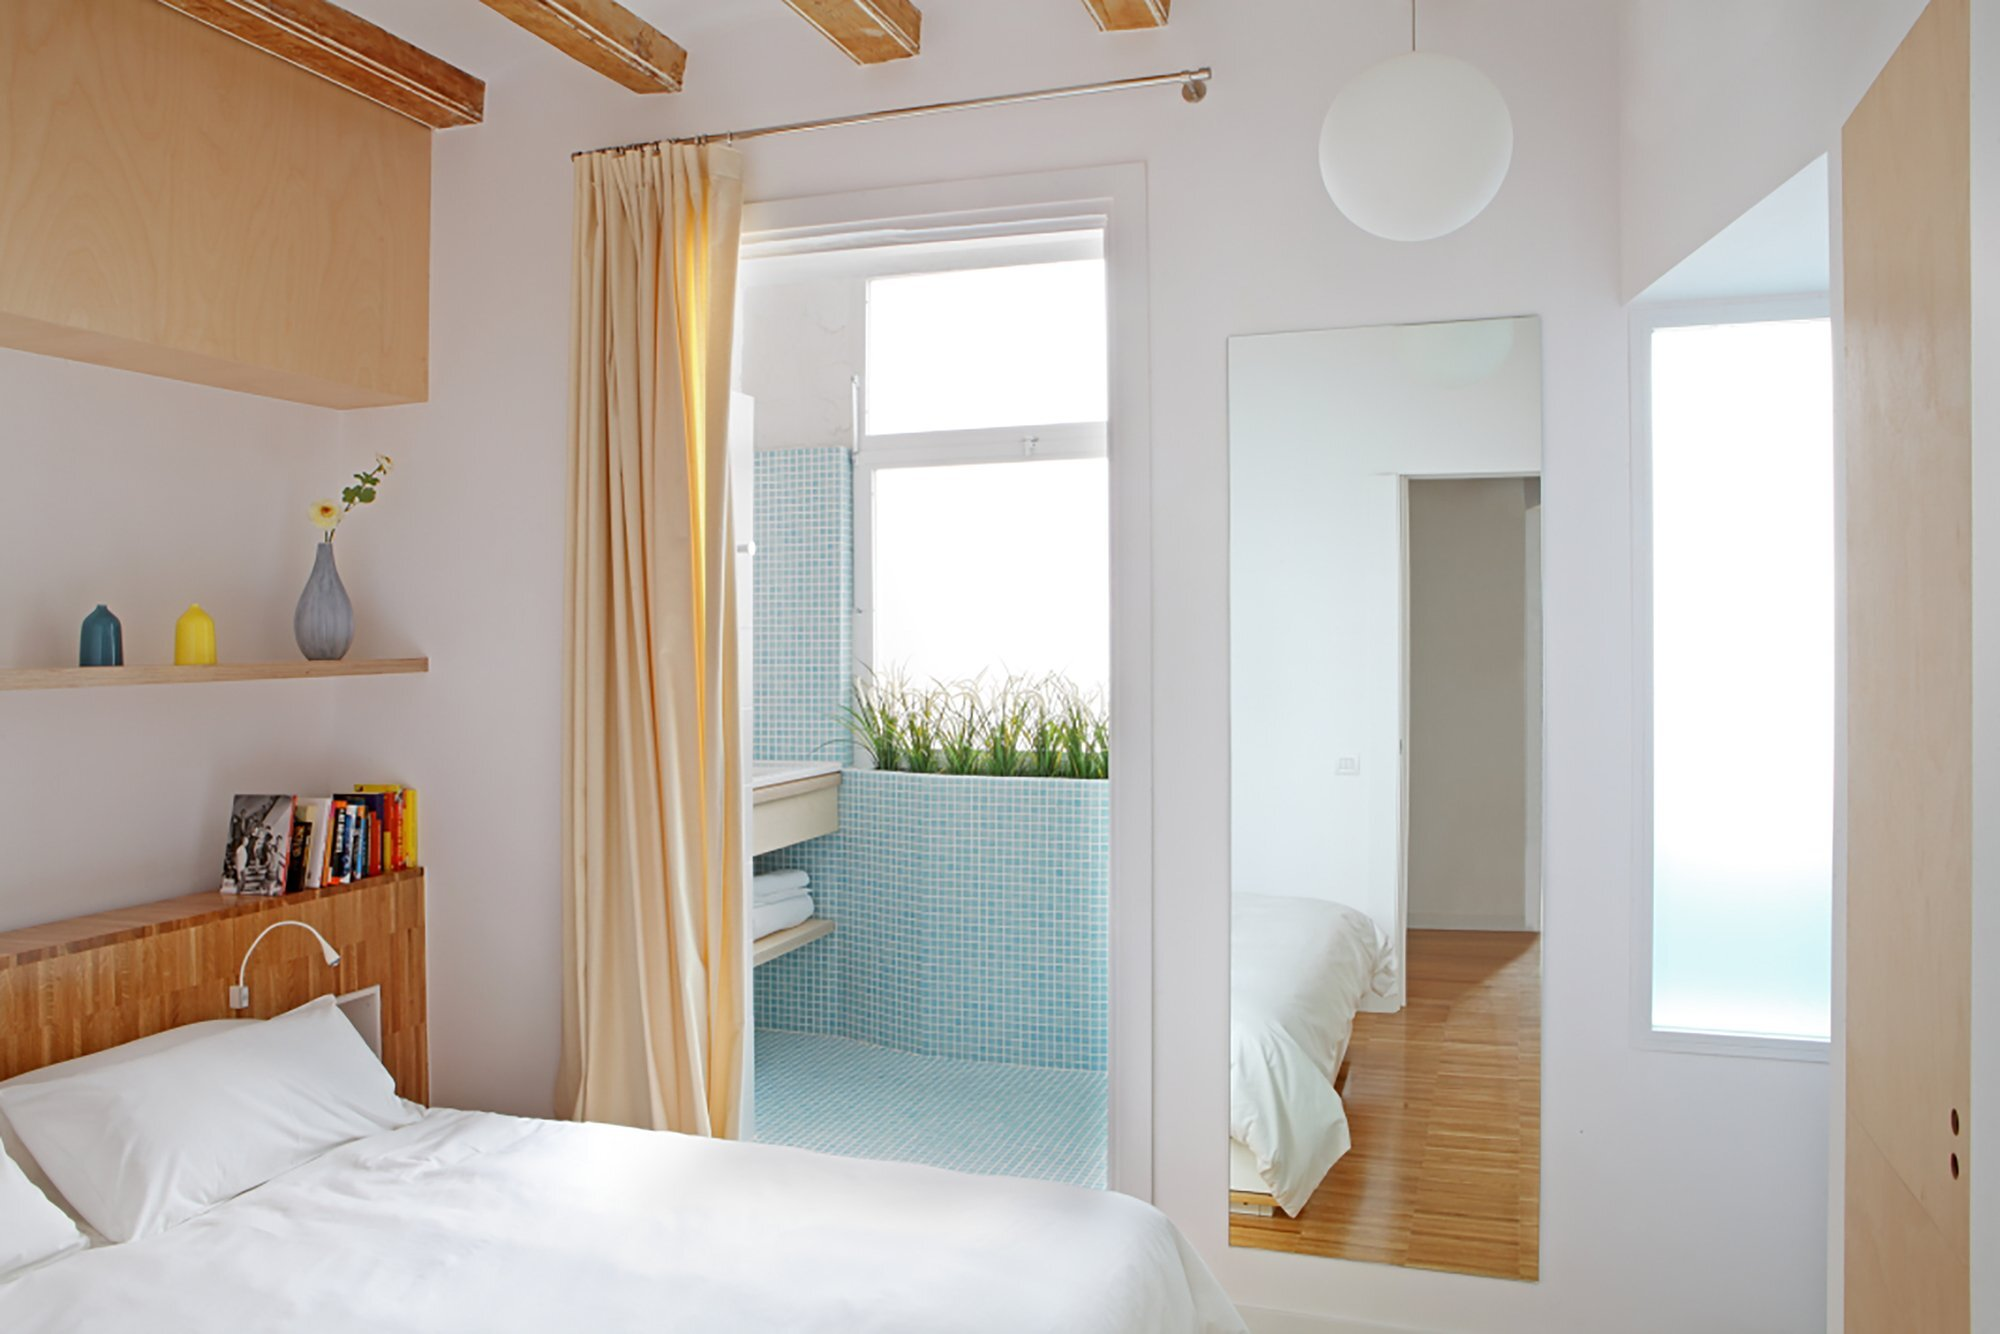 Apartment Pujades11 - Small Apartment - Miel Arquitectos + Studio P10 - Spain - Bedroom - Humble Homes